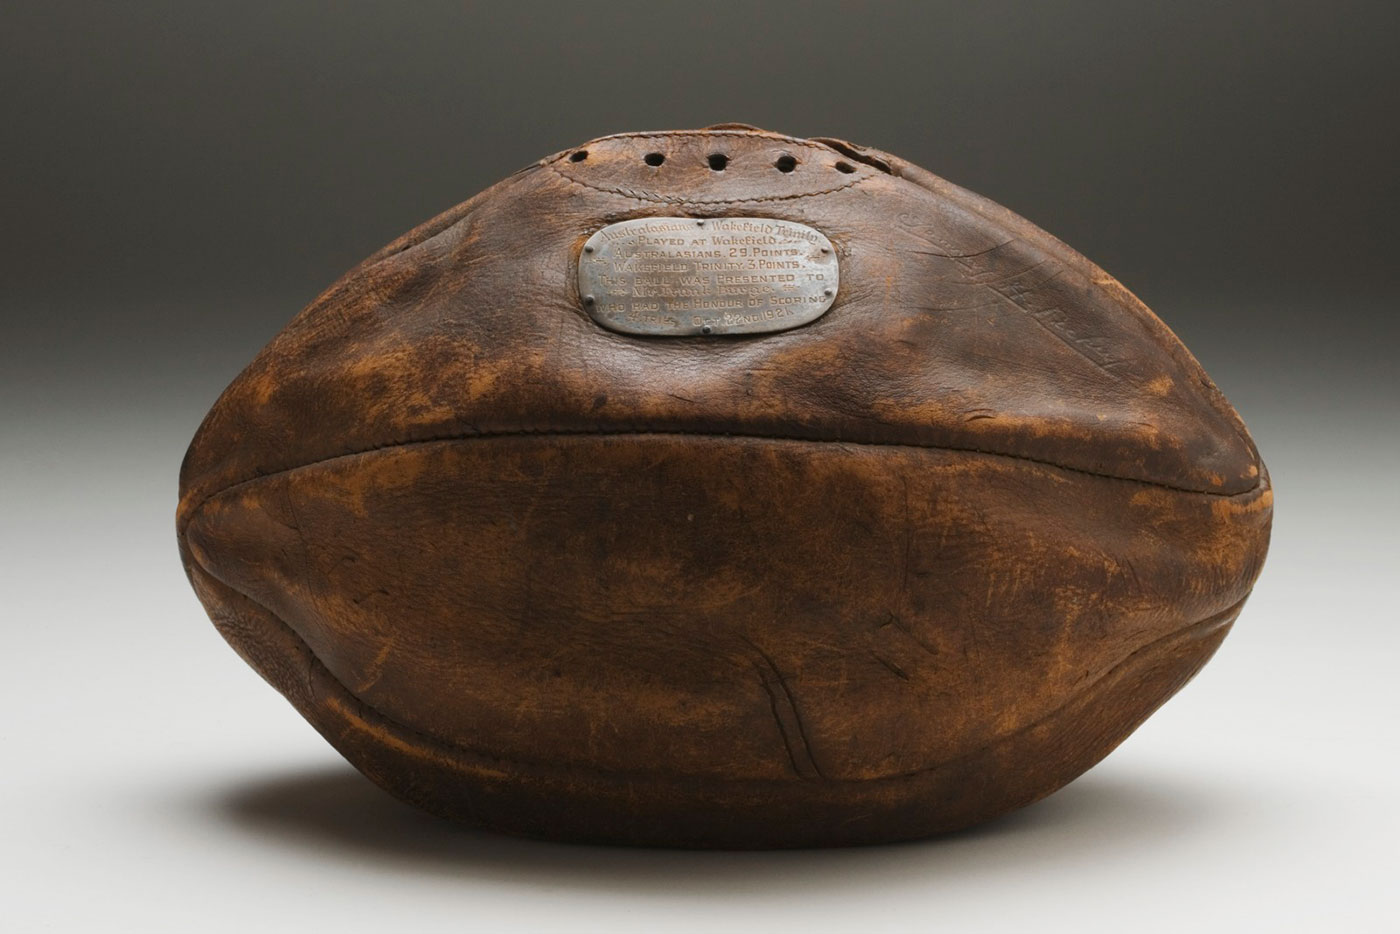 Football with small commemmorative plaque on side. - click to view larger image